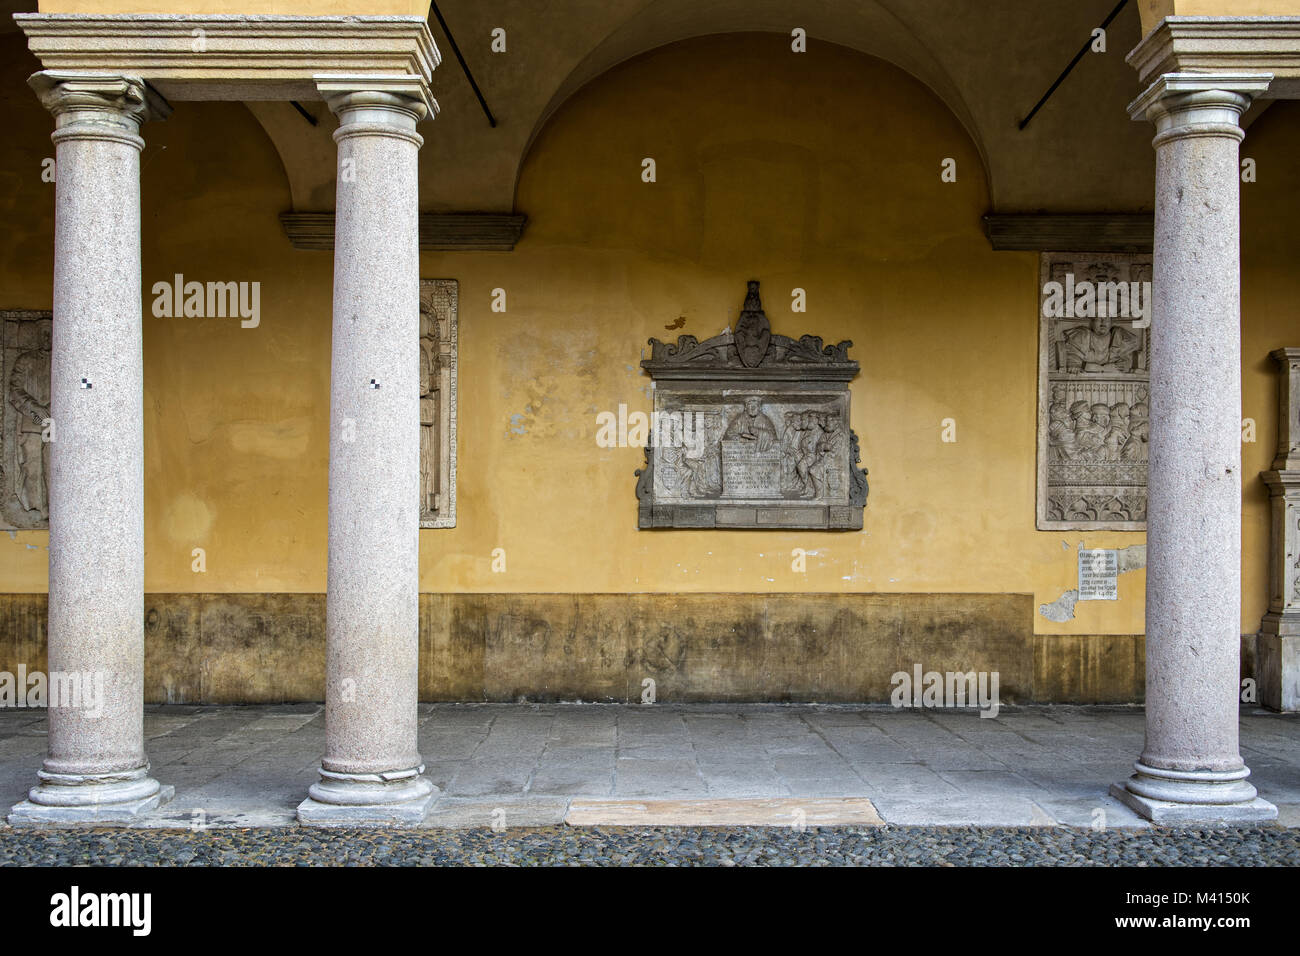 Columns and bas-relief at the University of Pavia, Lombardy, northern Italy Stock Photo